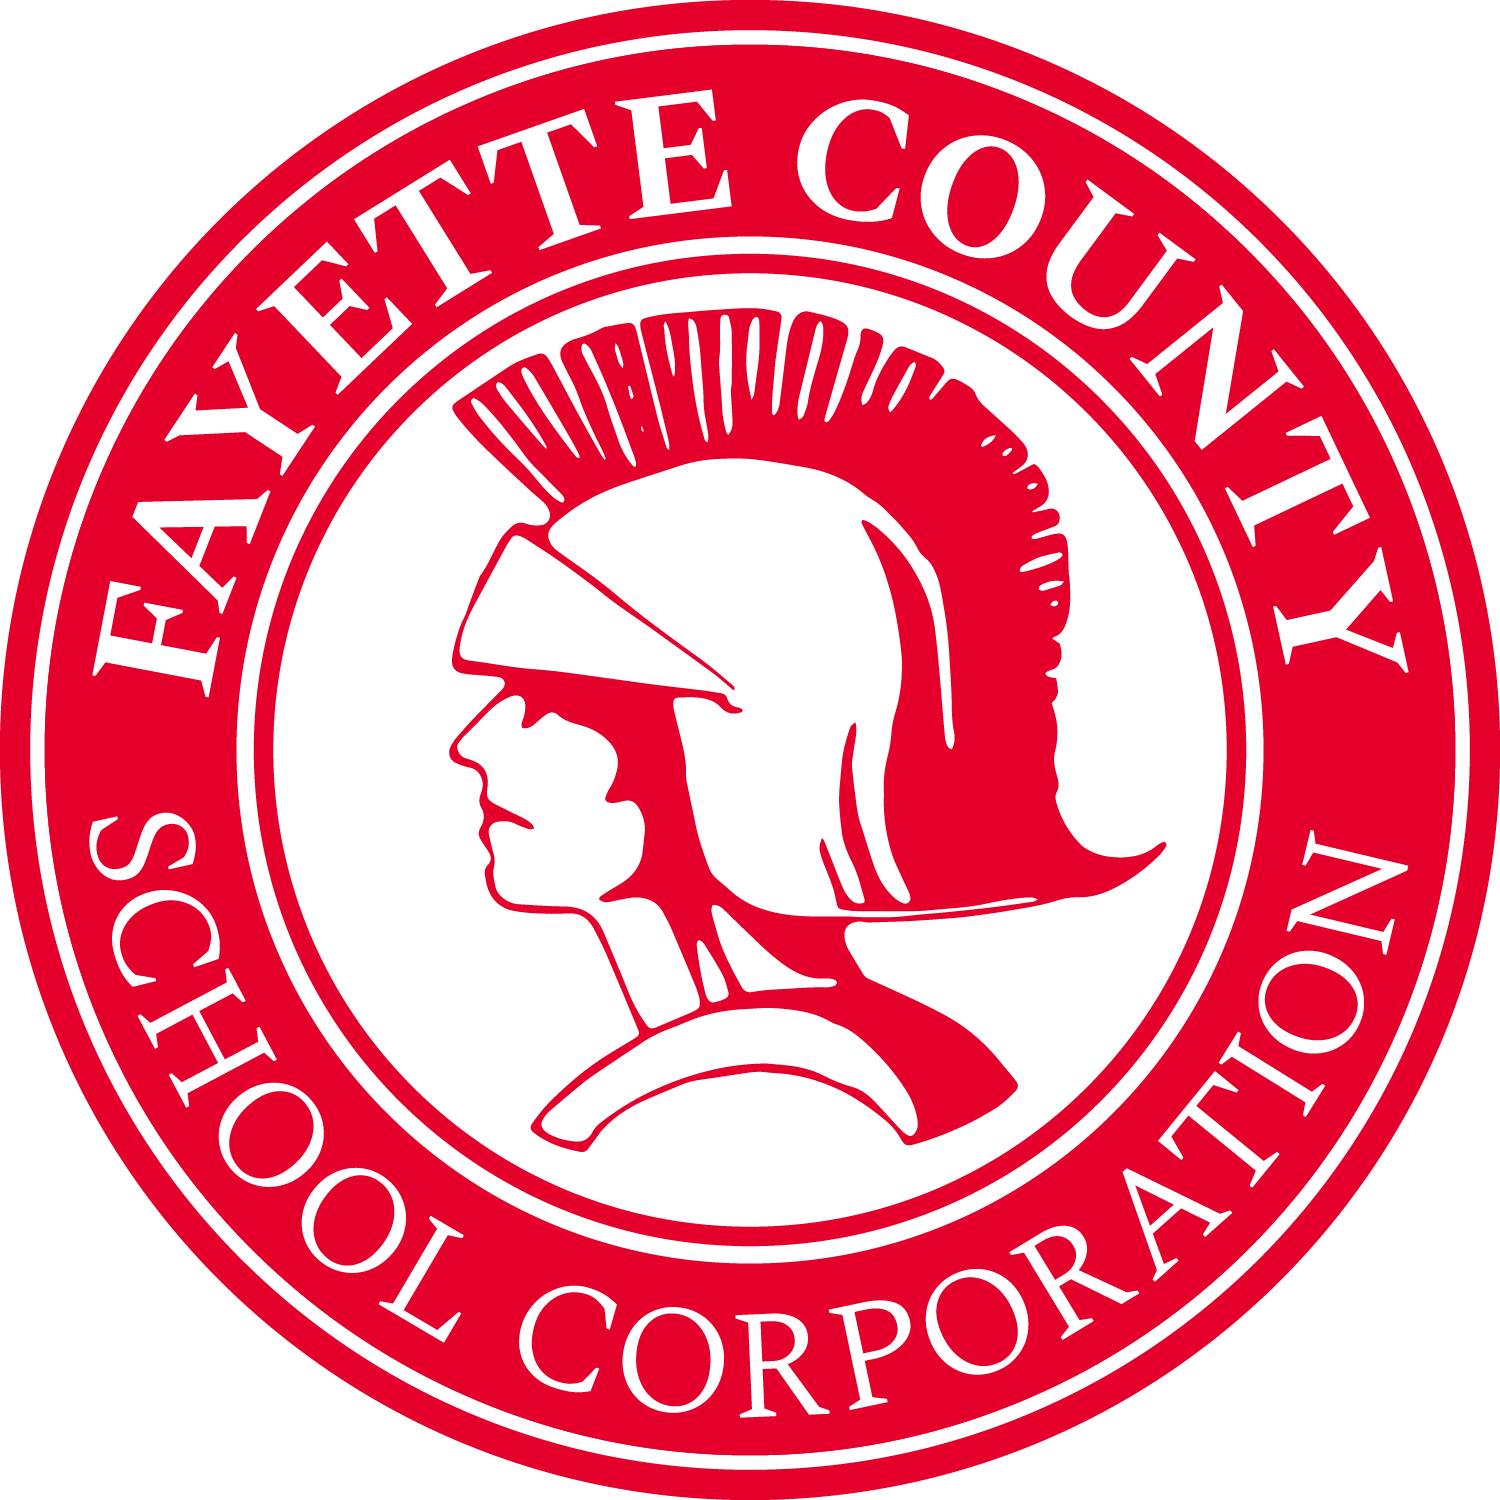 Fayette County School Corporation